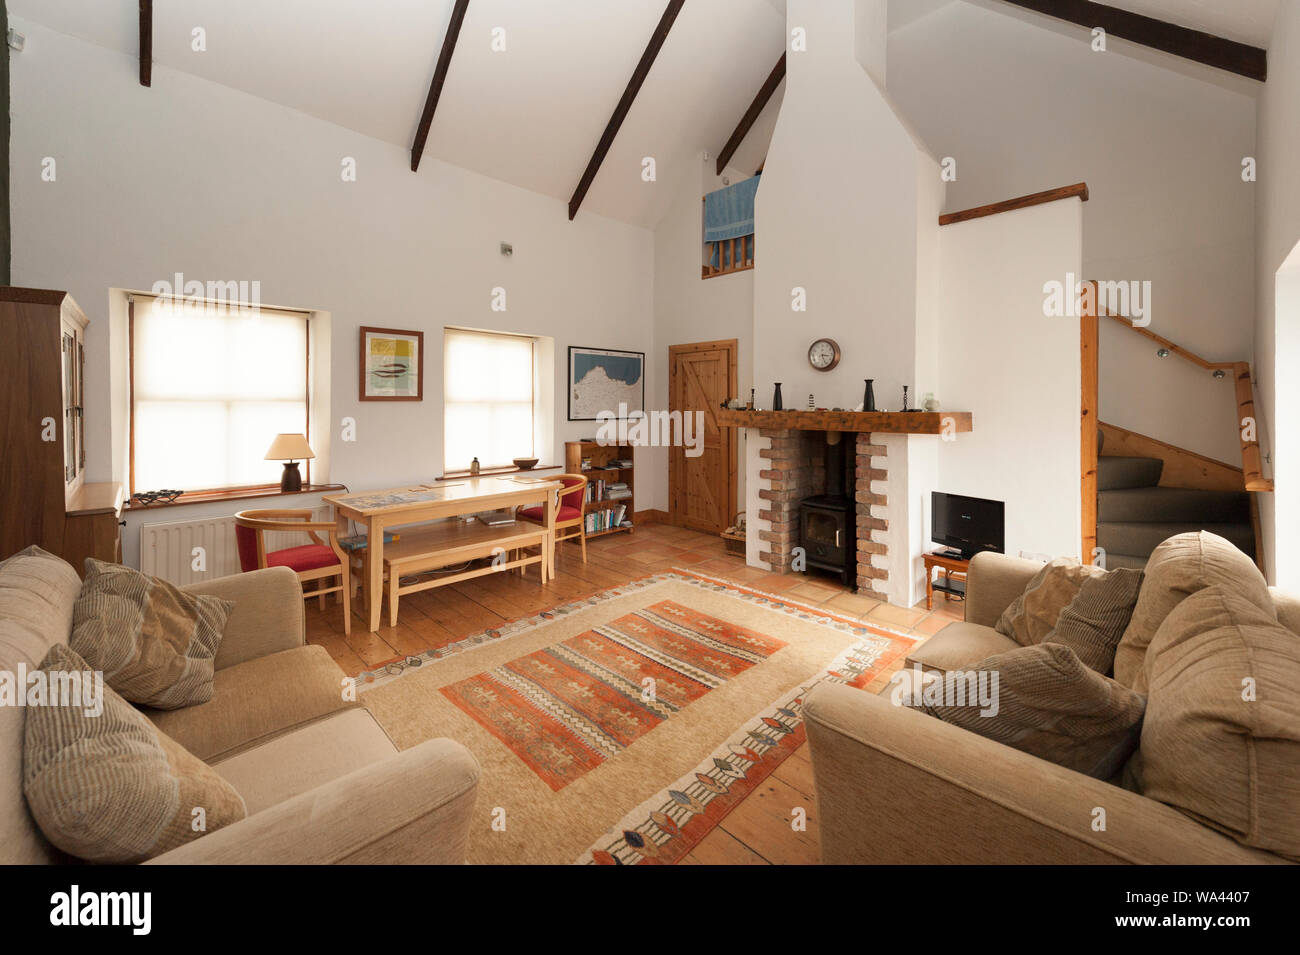 Wood Roof And Ceiling High Resolution Stock Photography And Images Alamy